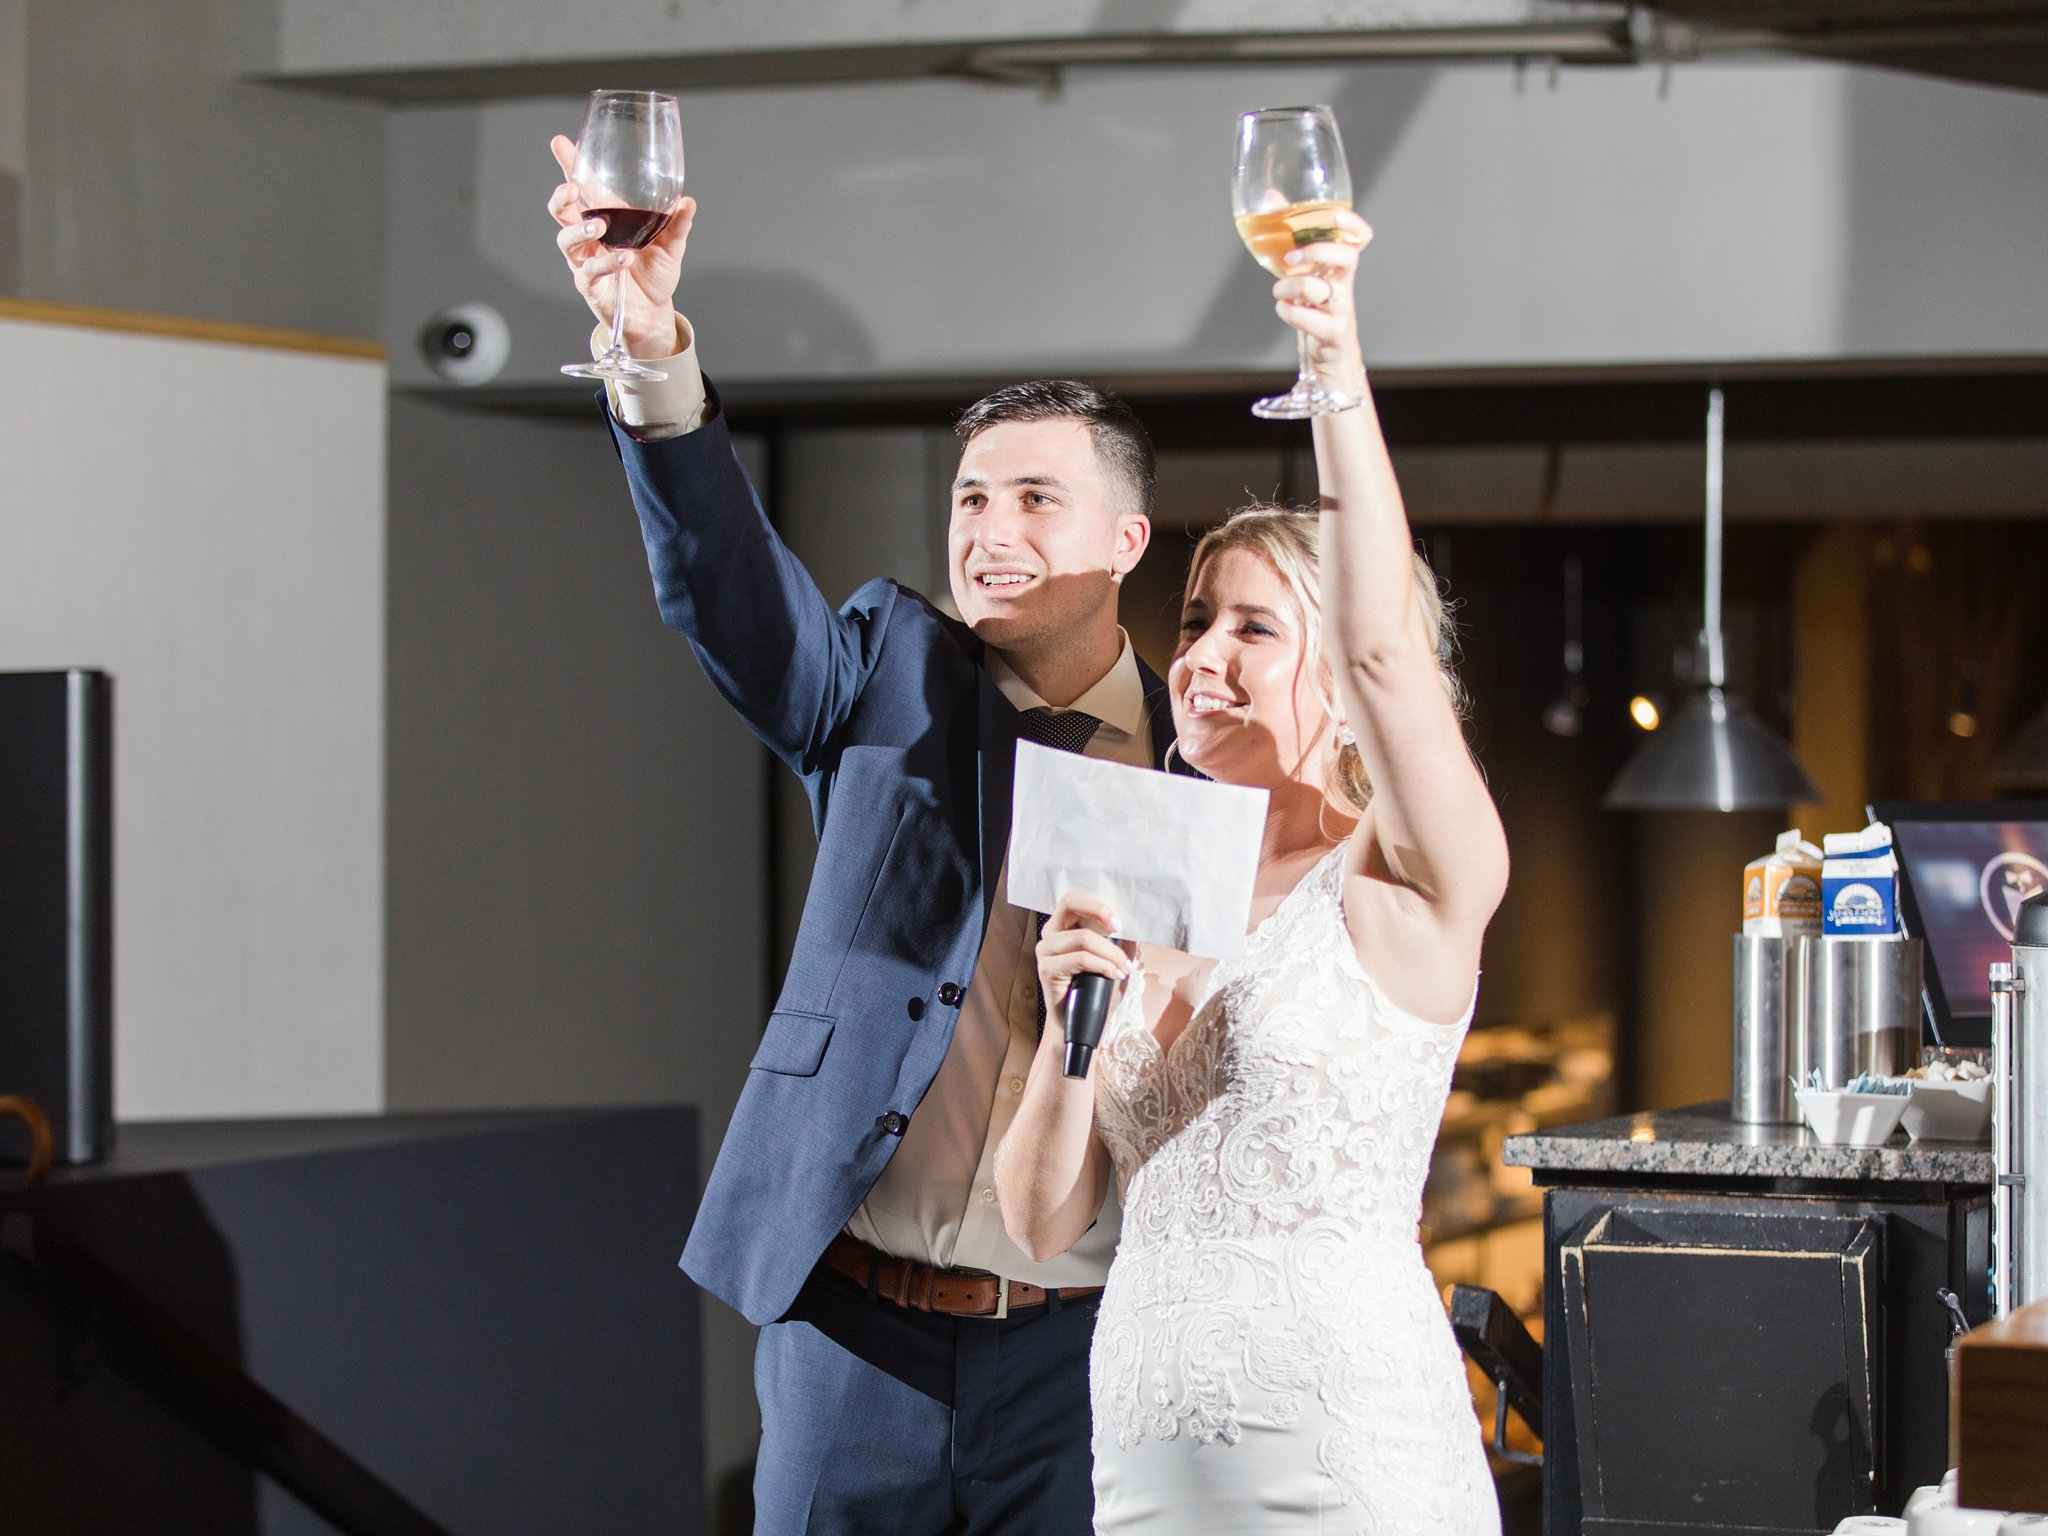 Final wedding toast Ottawa restaurant wedding at Sidedoor Restaurant